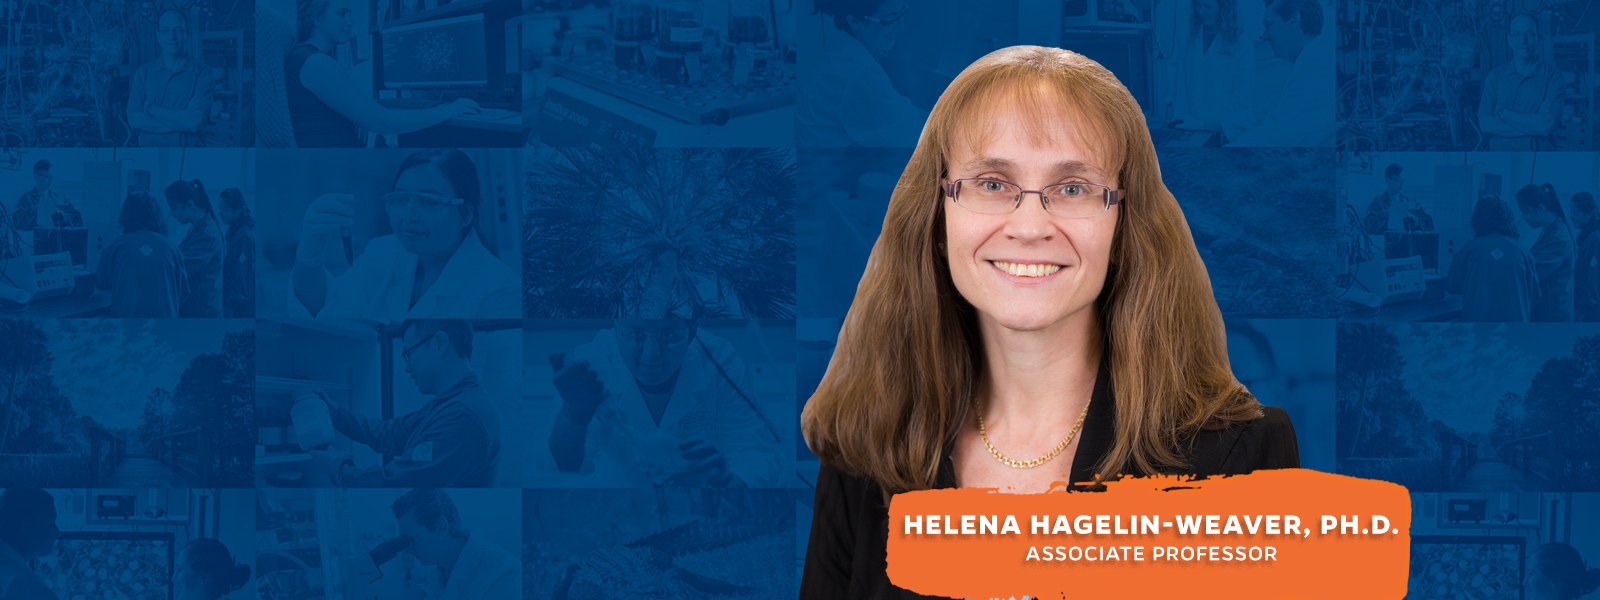 Helena Hagelin-Weaver, Ph.D.